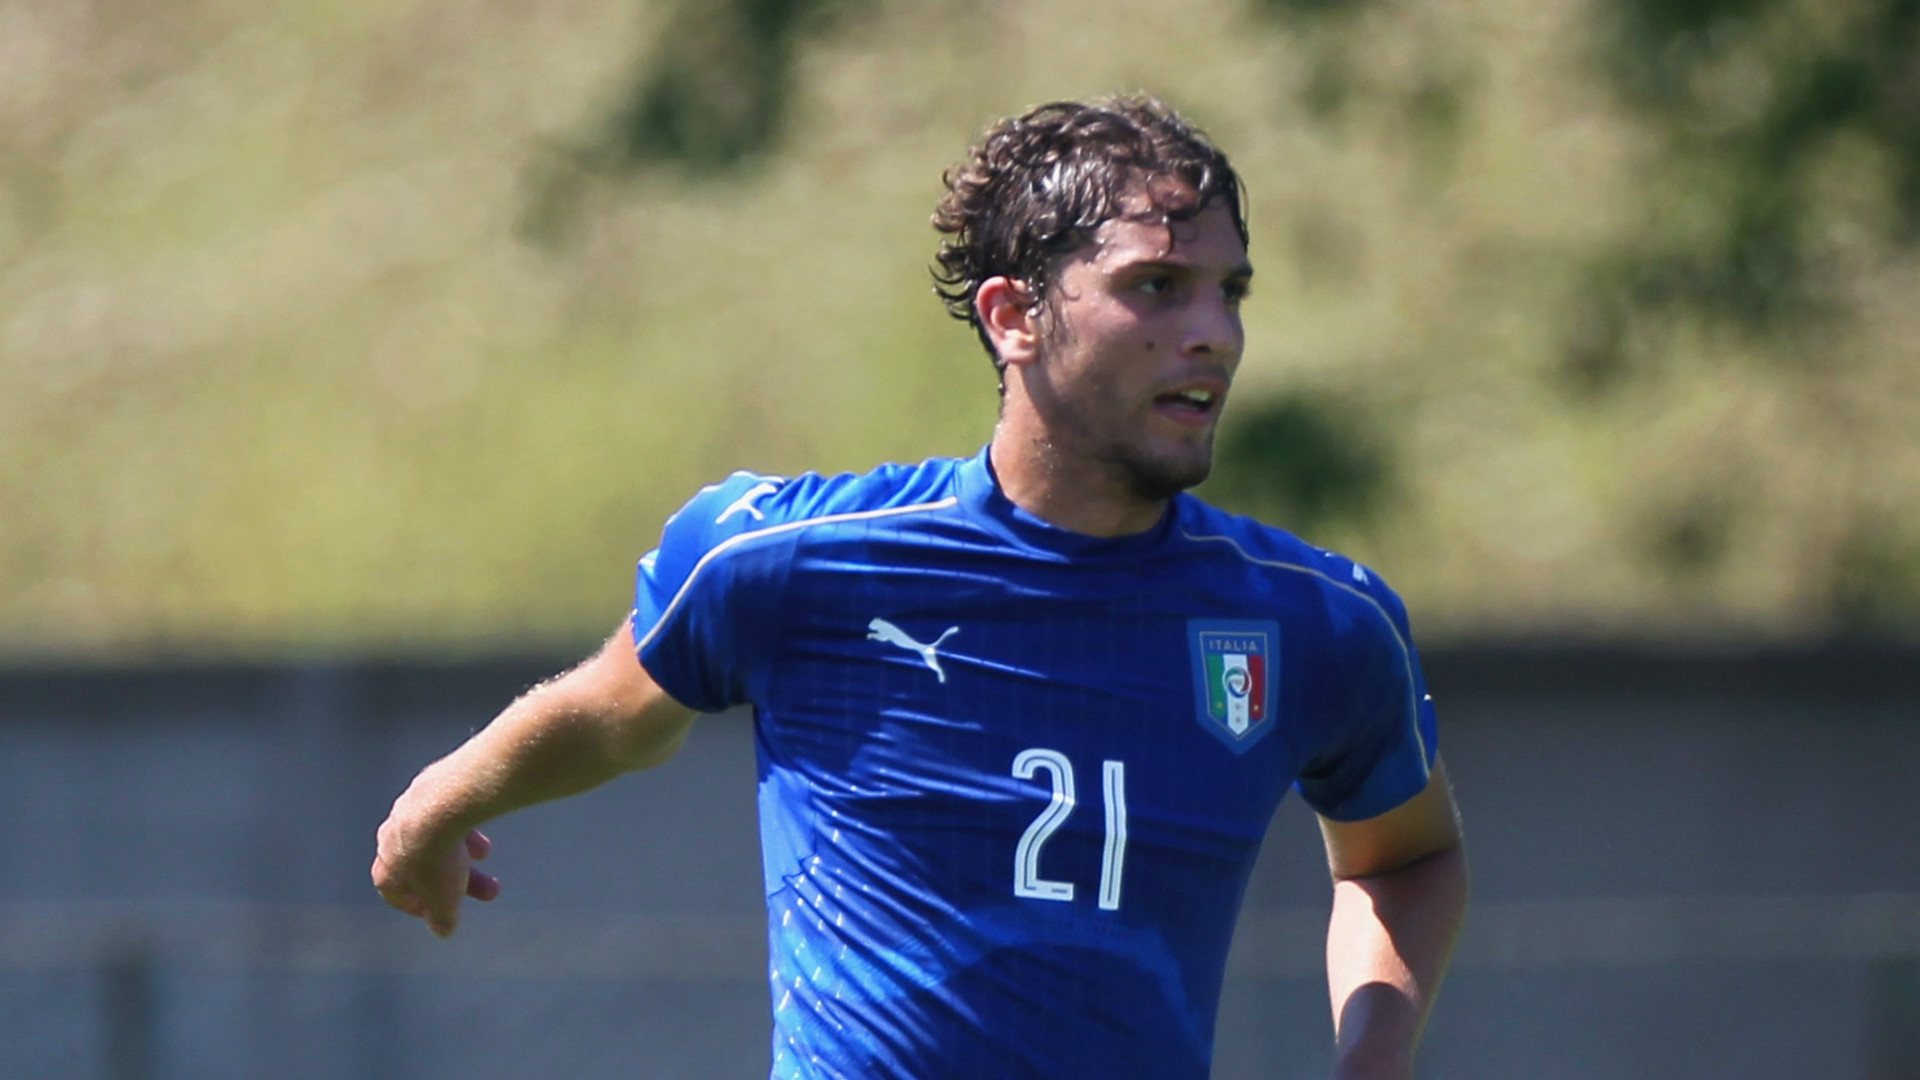 Italia-Spagna? Locatelli è fiducioso: